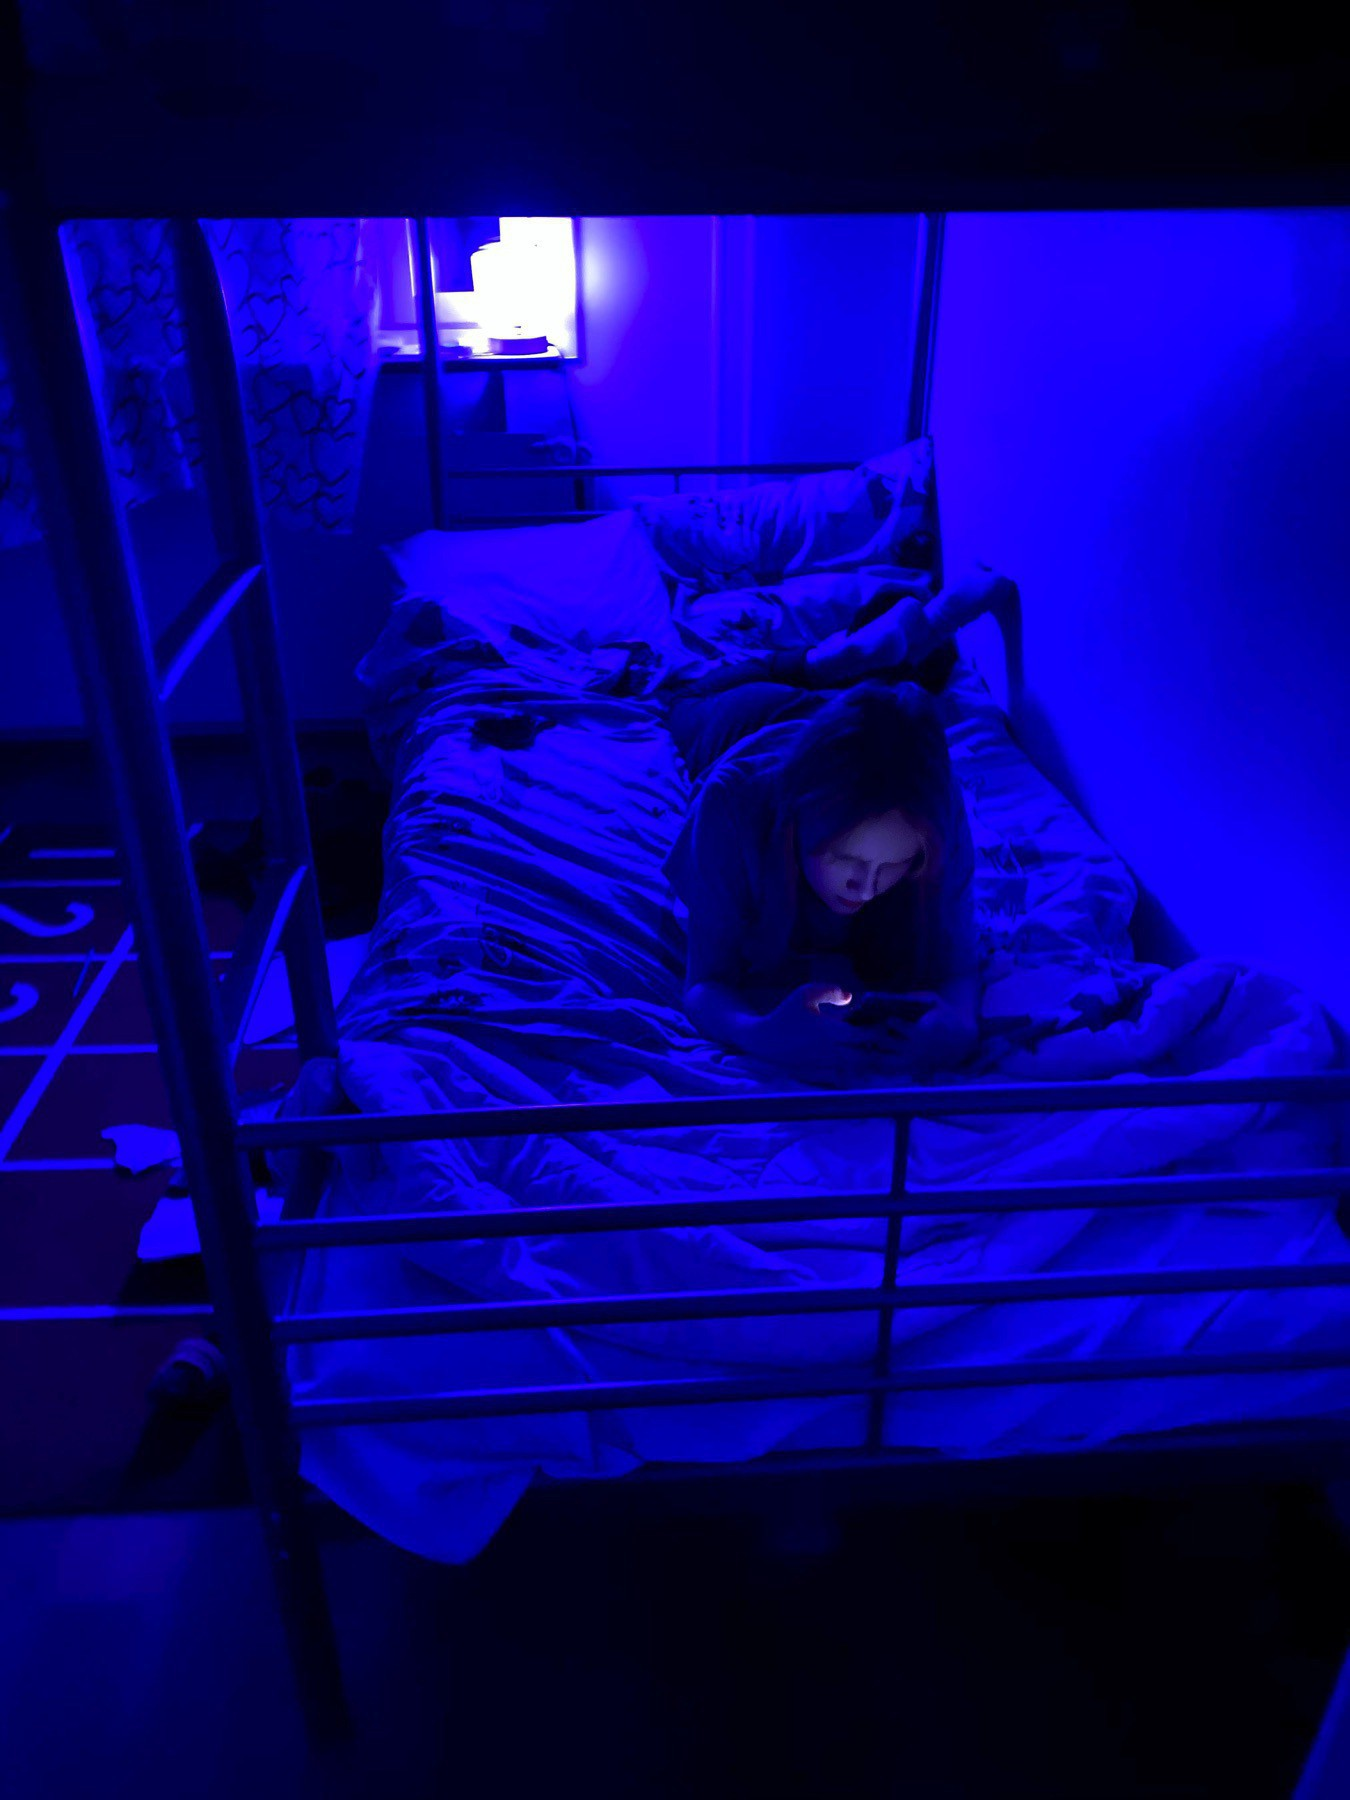 Blue lit room, bunk bed, a child on her phone